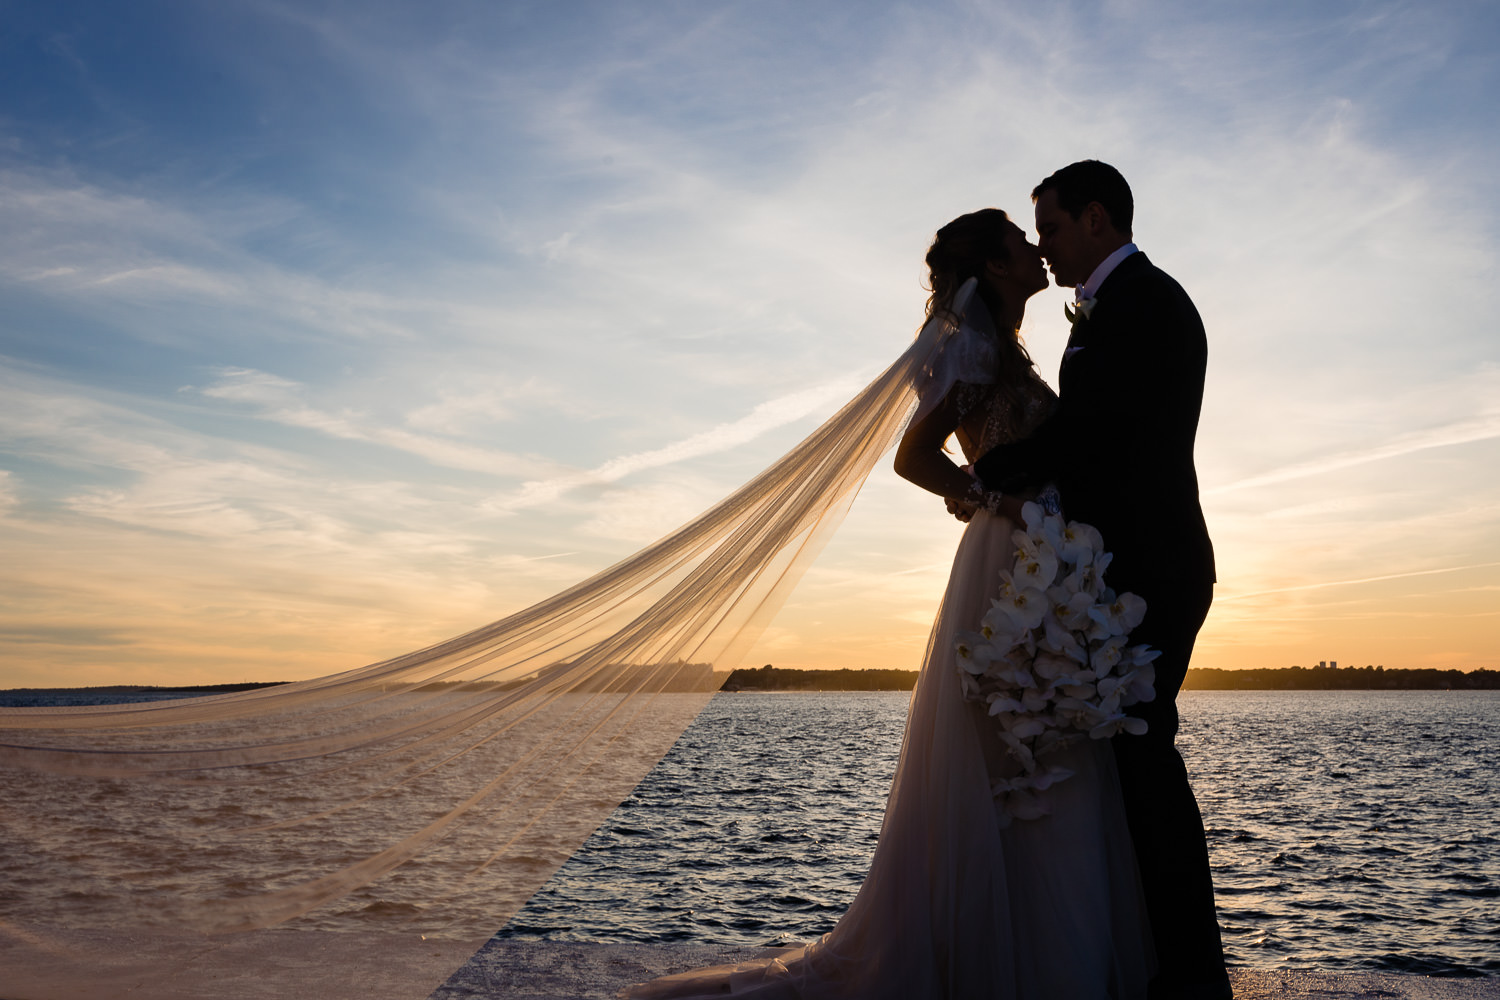 bride with veil and groom silhouetted against a sunset sky